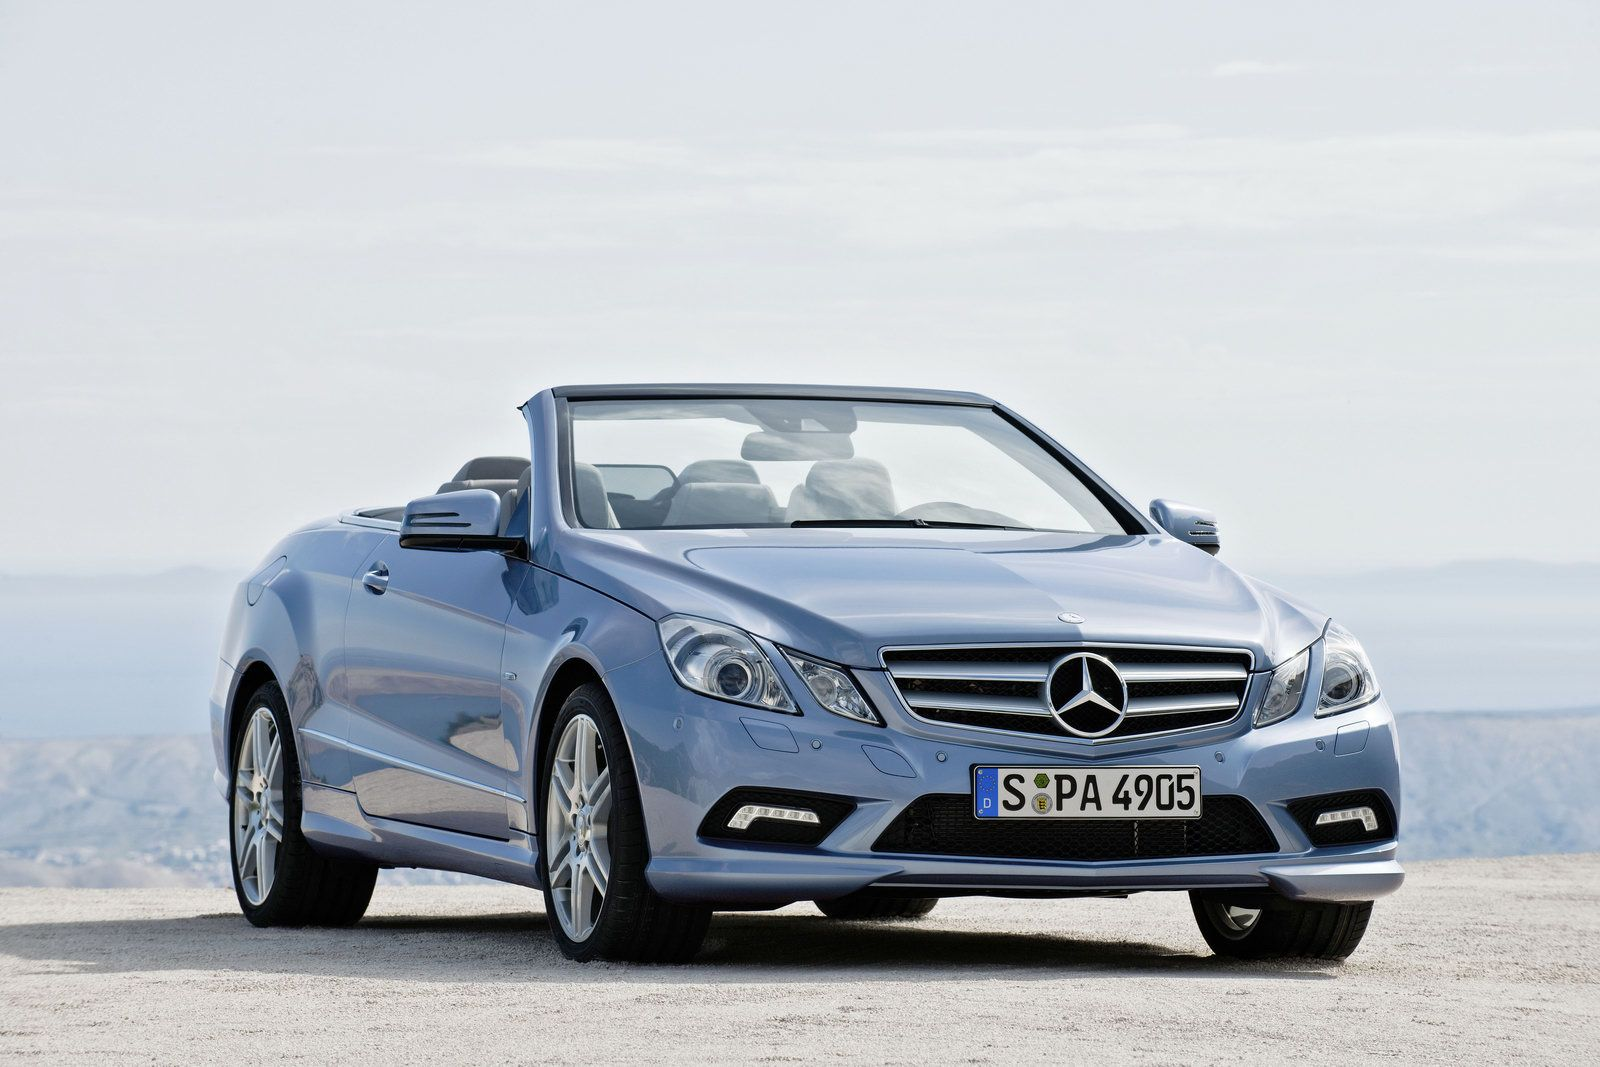 New 2010 mercedes e class convertible officially revealed for Autos mercedes benz